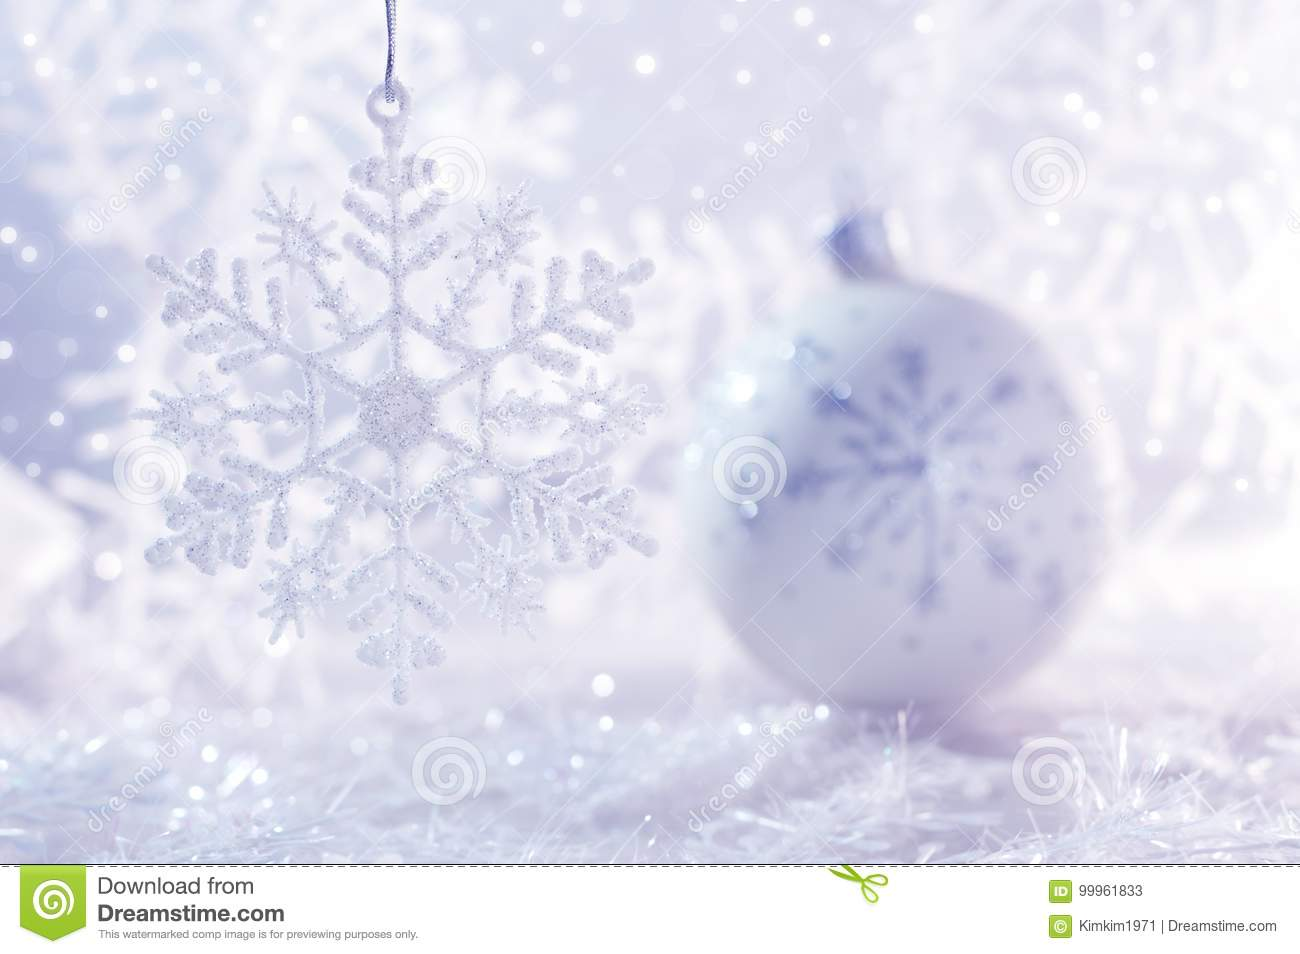 White Christmas Background.White Christmas Ball On White Background With Snowflakes And